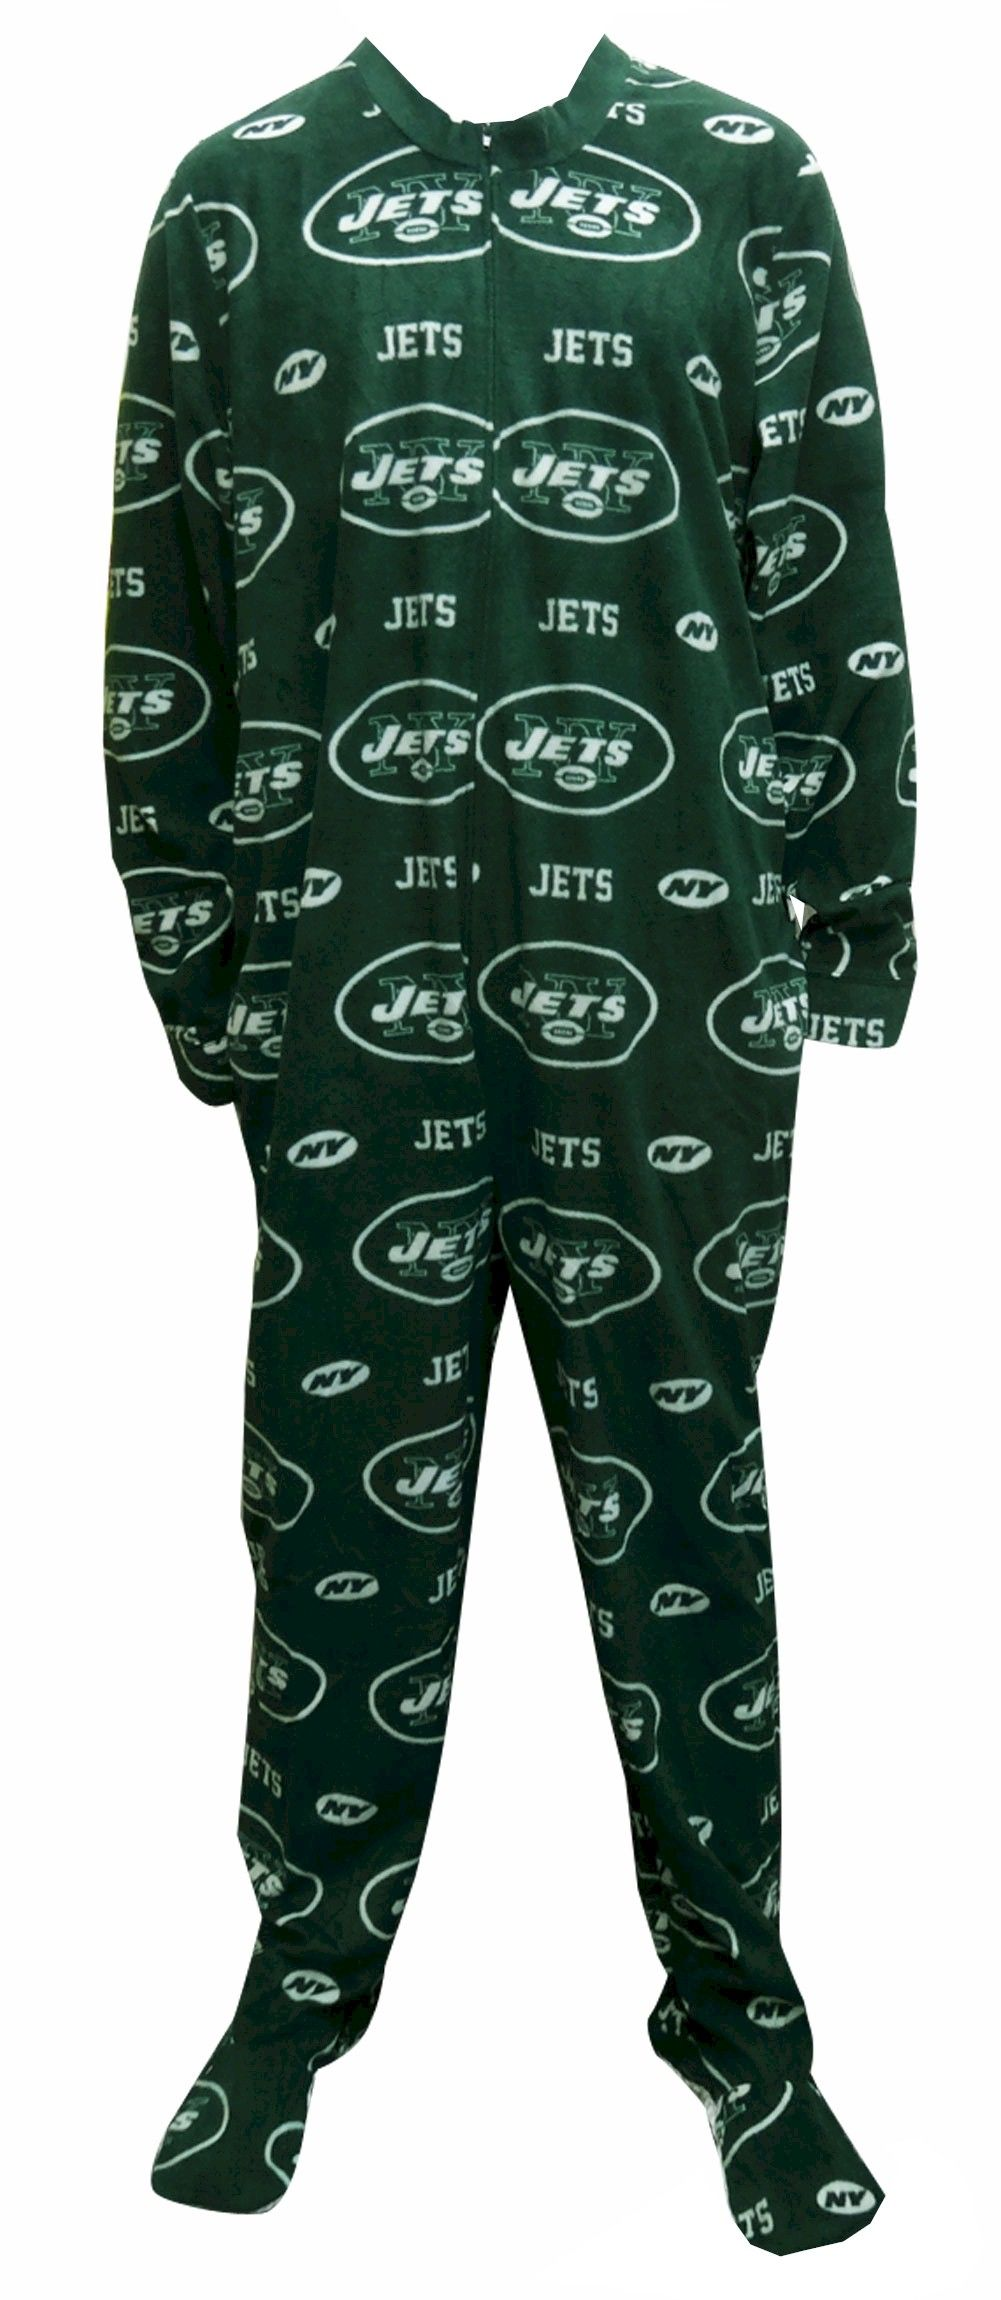 New York Jets Guys Onesie Footie Pajama Go Gang Green! This cozy  microfleece footie pajama for men features the classic New Yor.